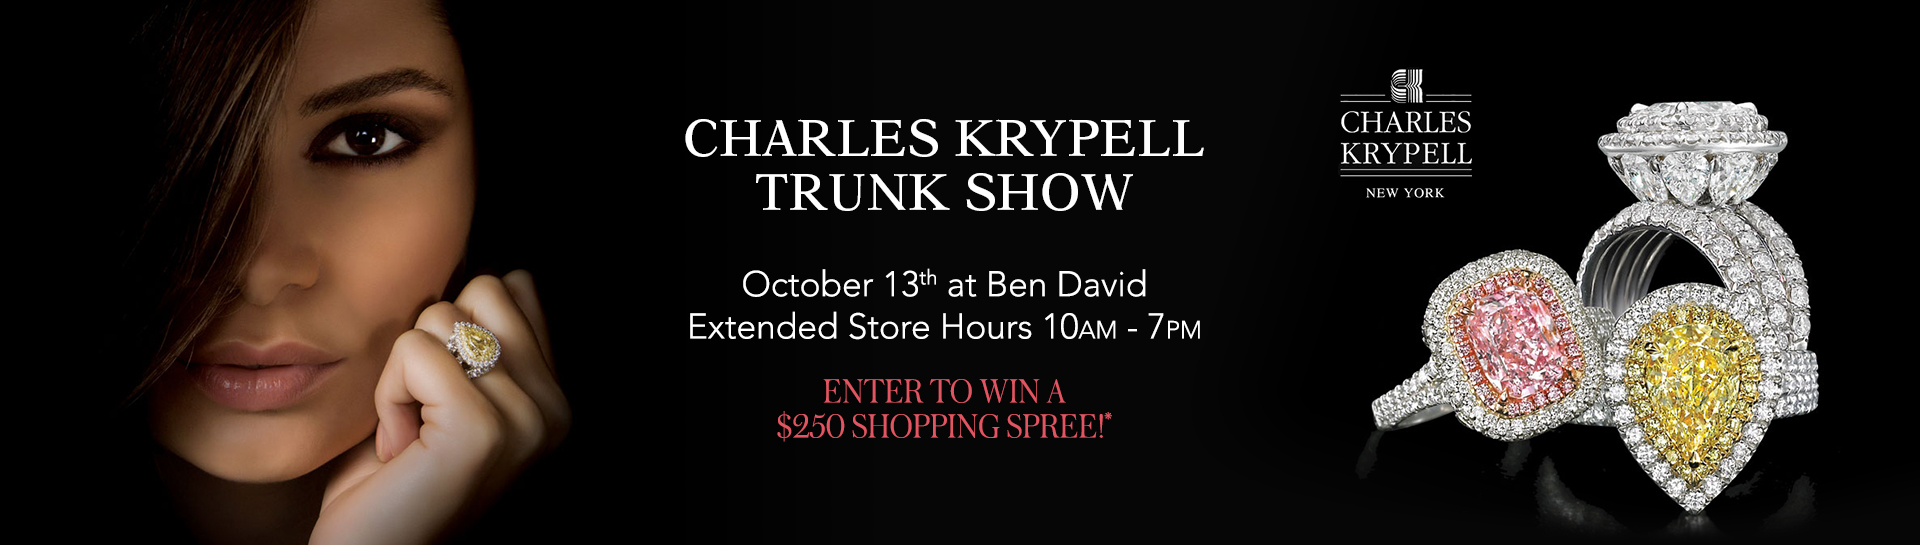 Charles Krypell Trunk Show October 13th